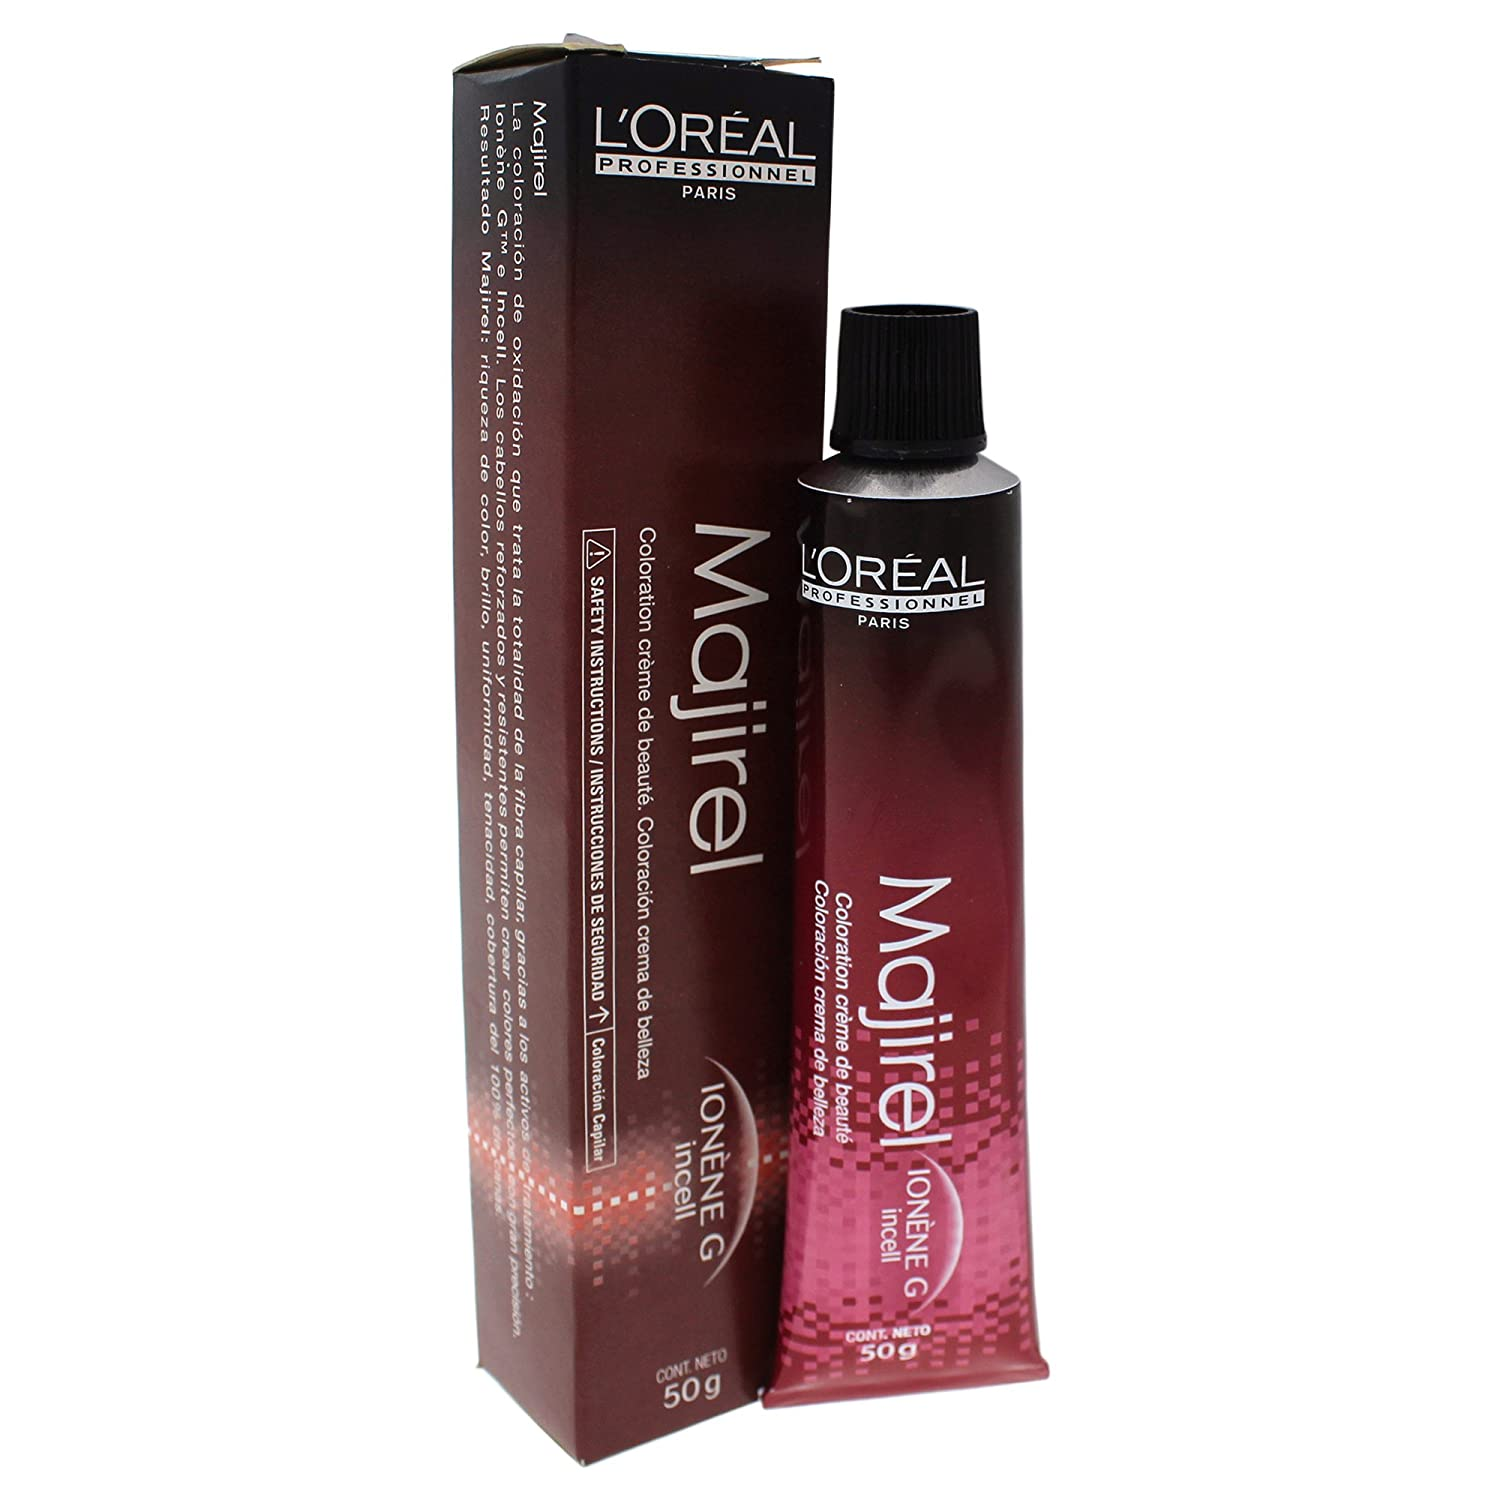 LOreal Professional Majirel, No. 5.52 Light Gold, 1.7 Ounce